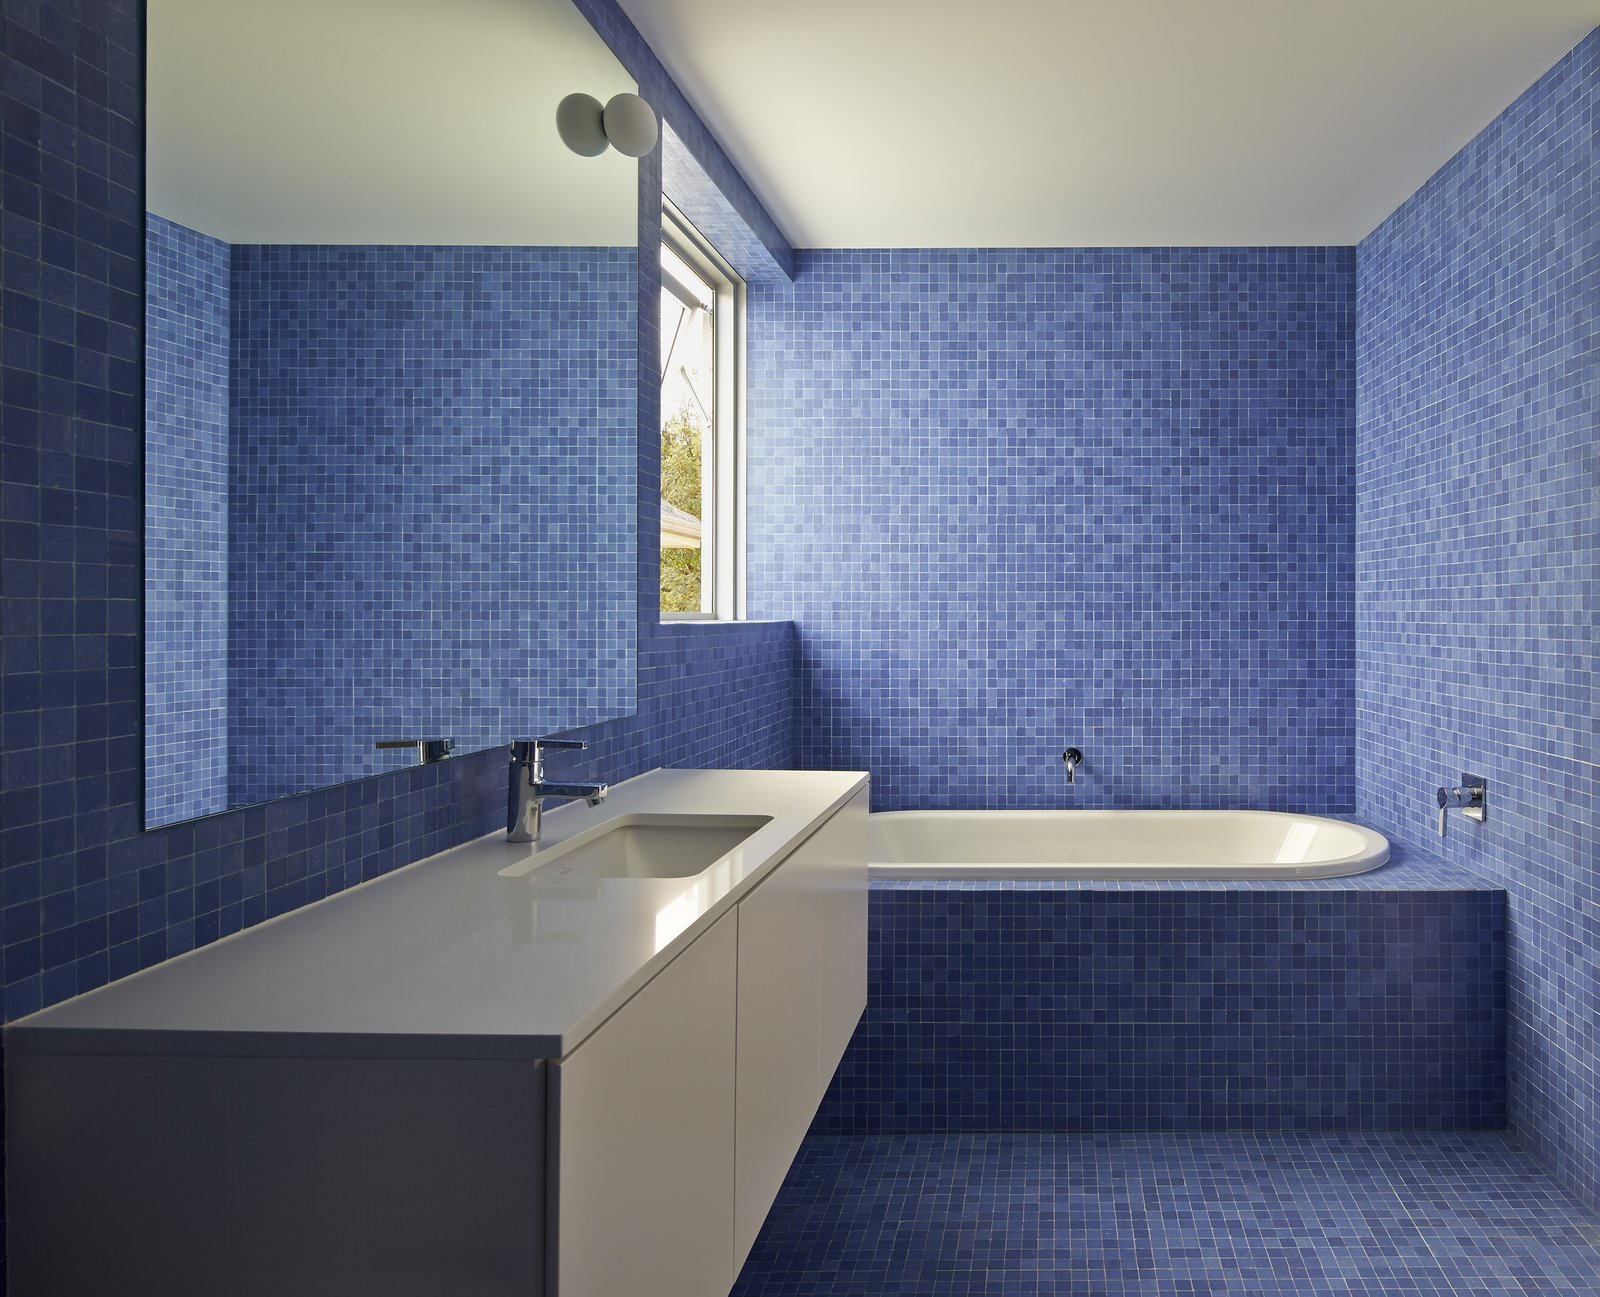 Bath, Ceramic Tile, Ceramic Tile, Drop In, Undermount, and Wall This bathroom, tiled in bright blue mosaic to offset the home's limited materials and color palette, calls for a simple vanity. The sinks, toilets, and tubs are by Villeroy & Boch, while the faucets and towel rails are by Grohe and Avenir, respectively.   Best Bath Wall Ceramic Tile Photos from Riverview